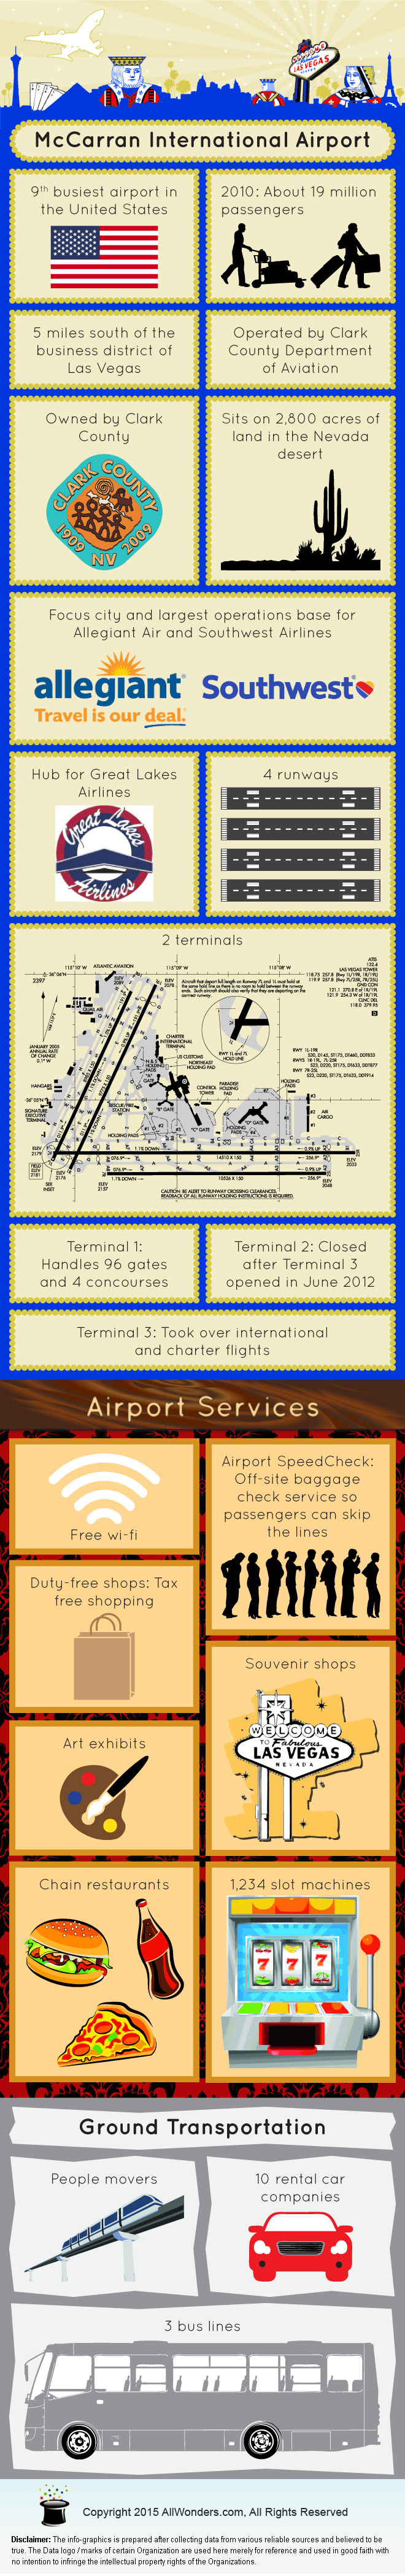 McCarran International Airport - Facts & Infographic